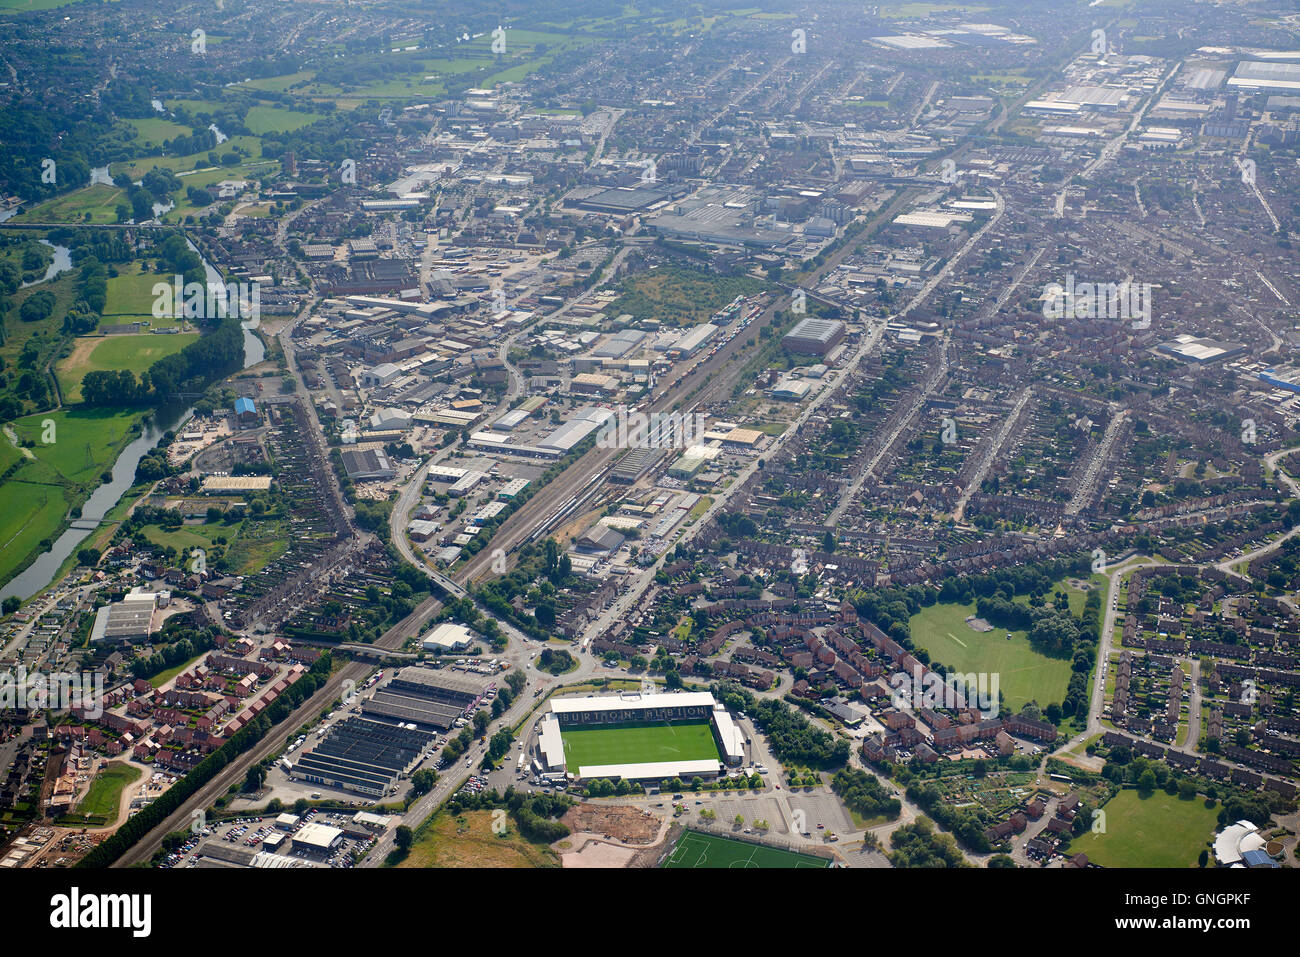 An aerial view of Burton upon Trent, East Midlands, UK. Football ground foreground - Stock Image